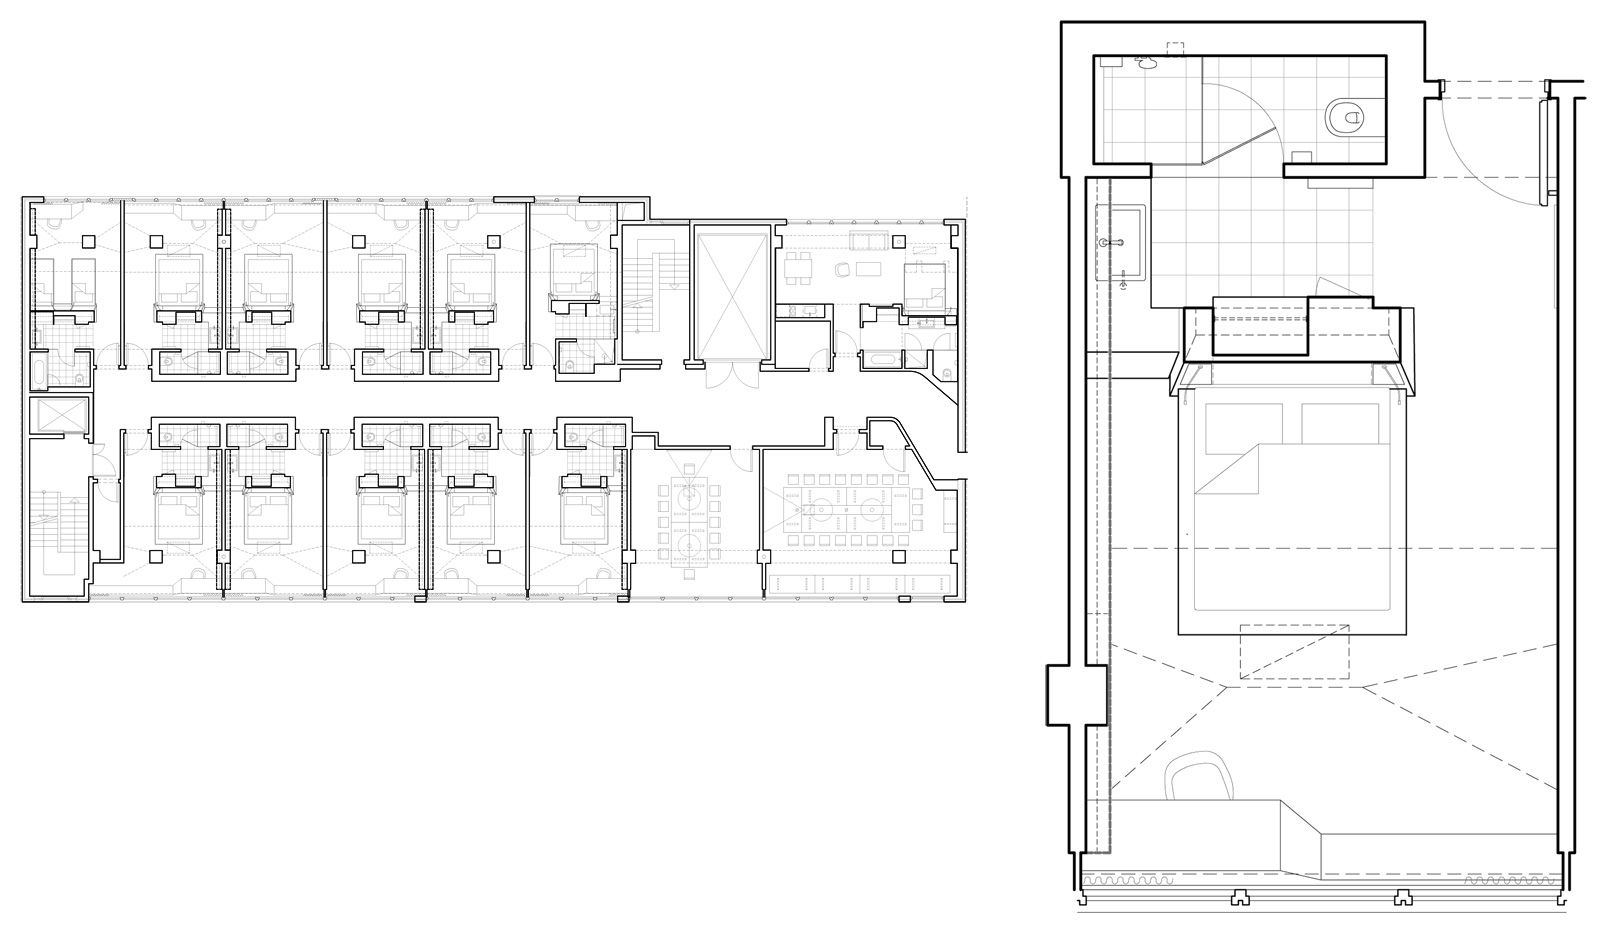 Hotel room layout dimensions images Room design planner